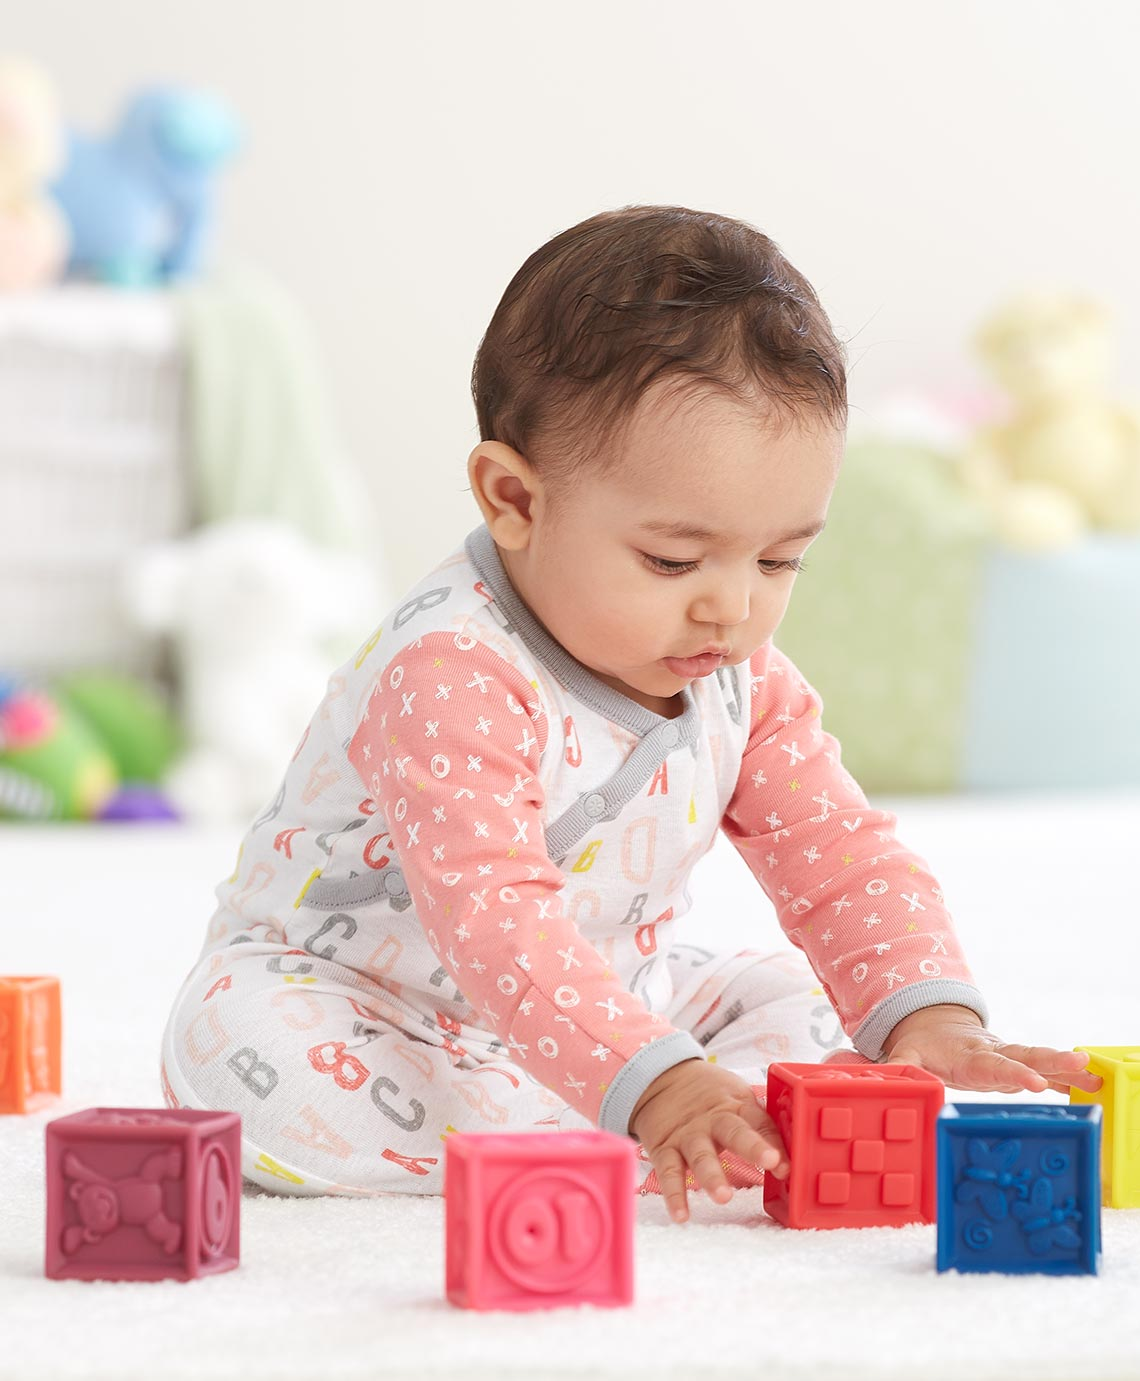 Infant baby playing with toys photographed by commercial photographer, Jim Esposito.